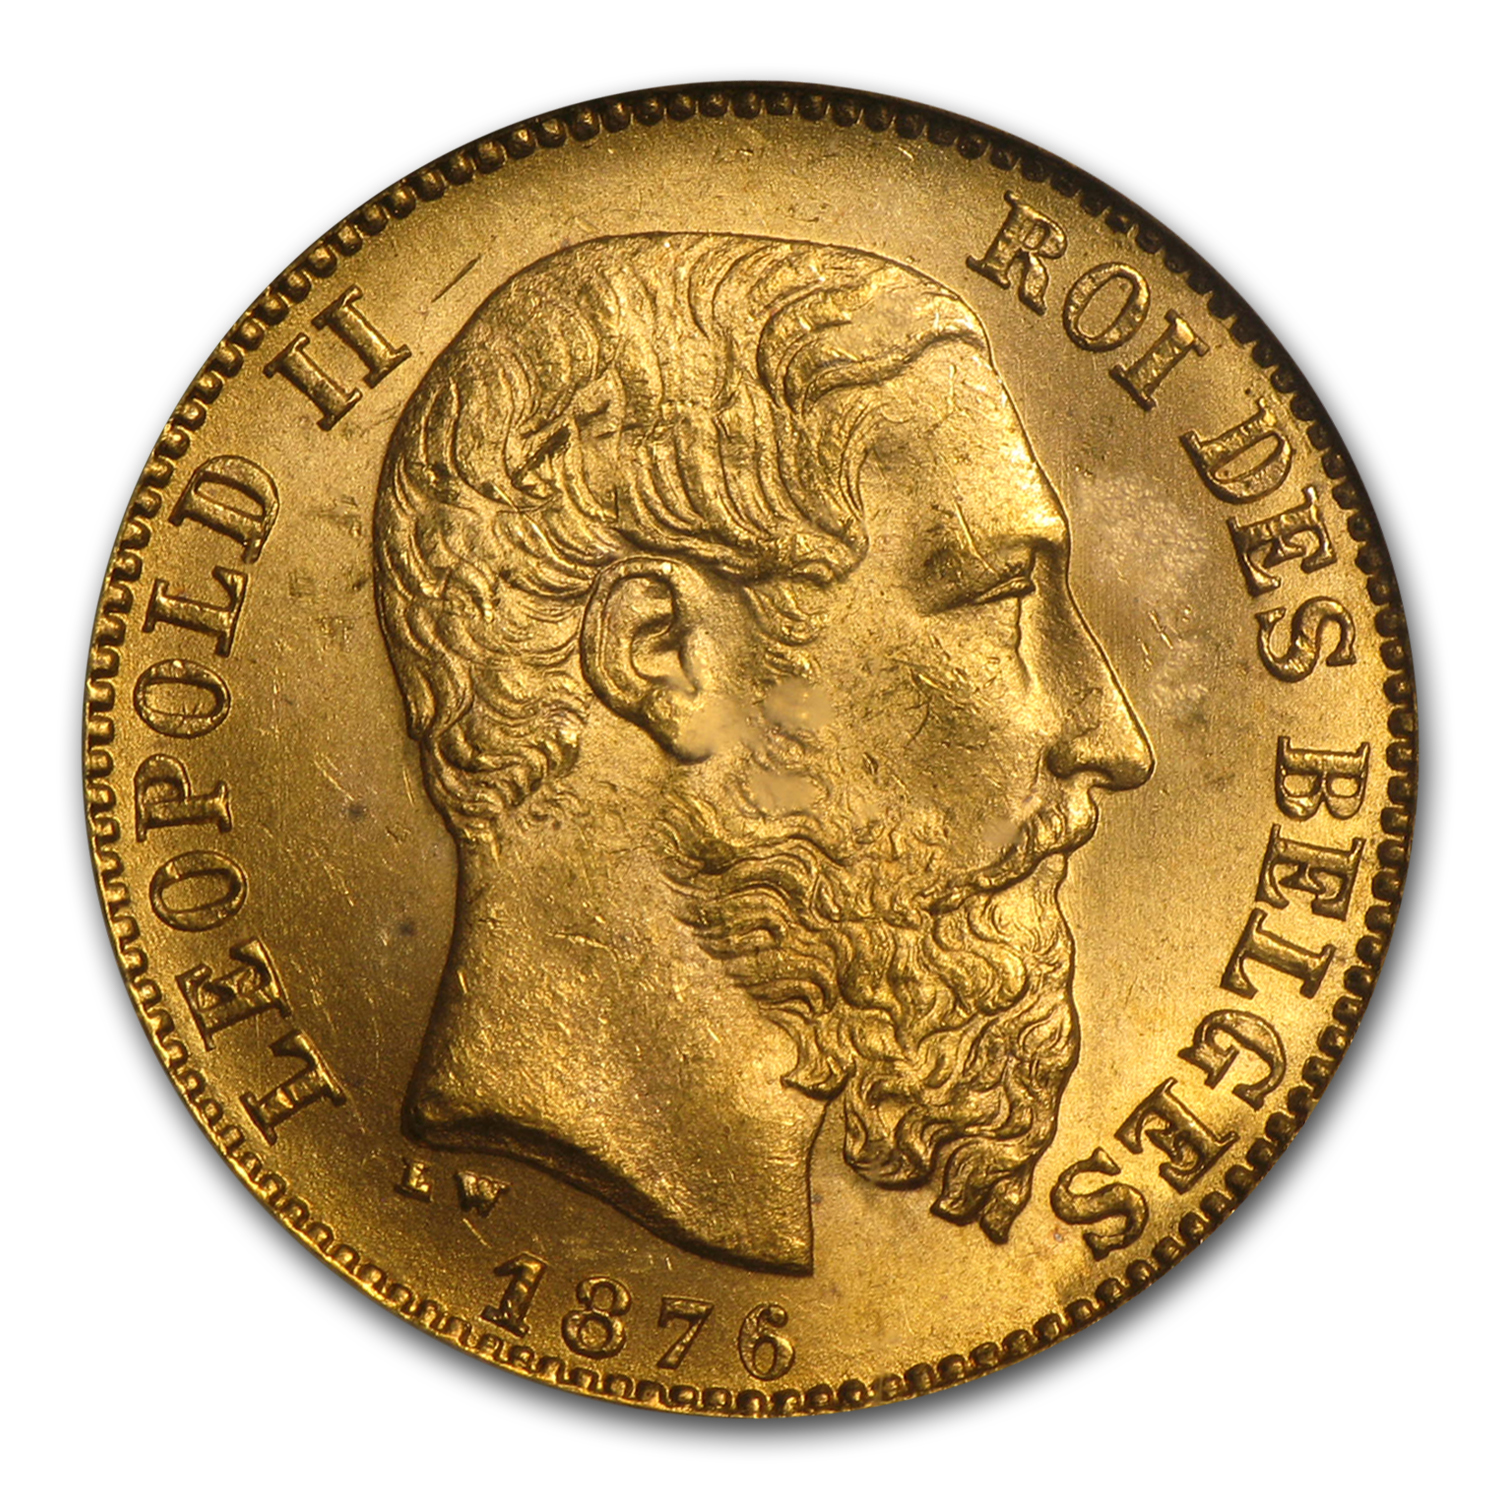 Belgium 1875 20 Francs Gold (Leopold II) -Brilliant Uncirculated